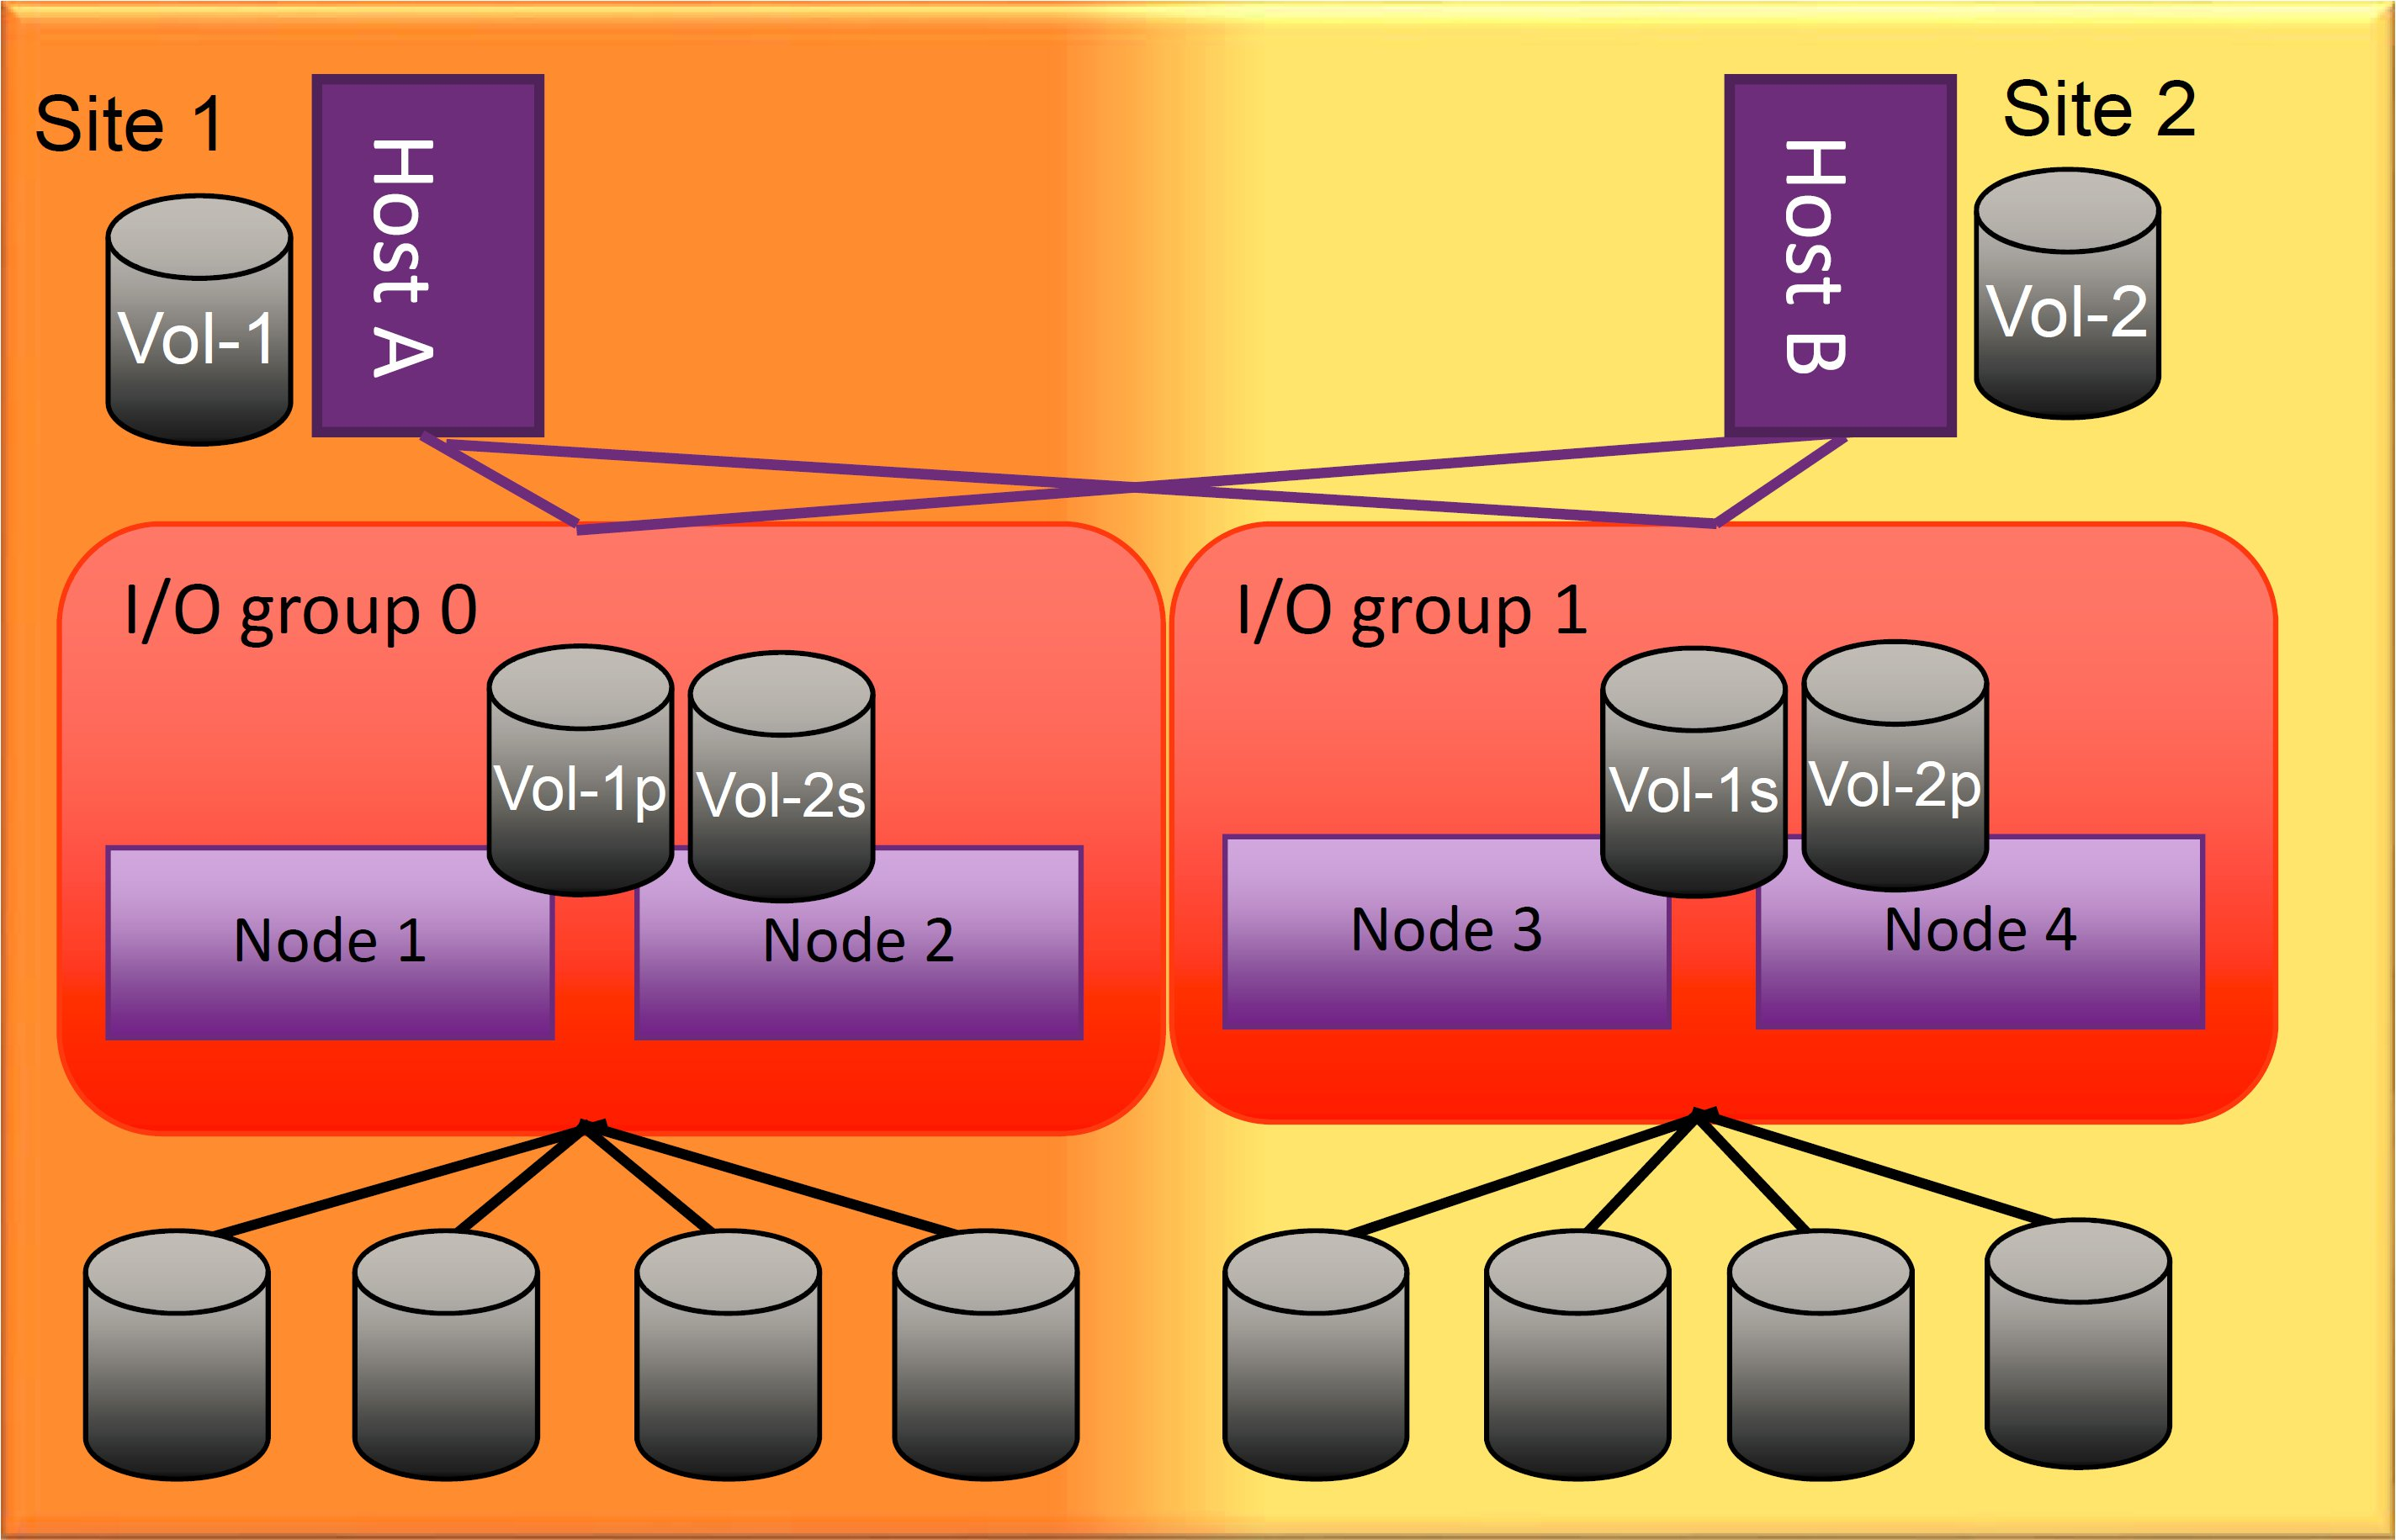 Interconnectivity: Host A, I/O group 0 with Nodes 1 & 2, and Host B, I/O group 1 with Nodes 3 & 4